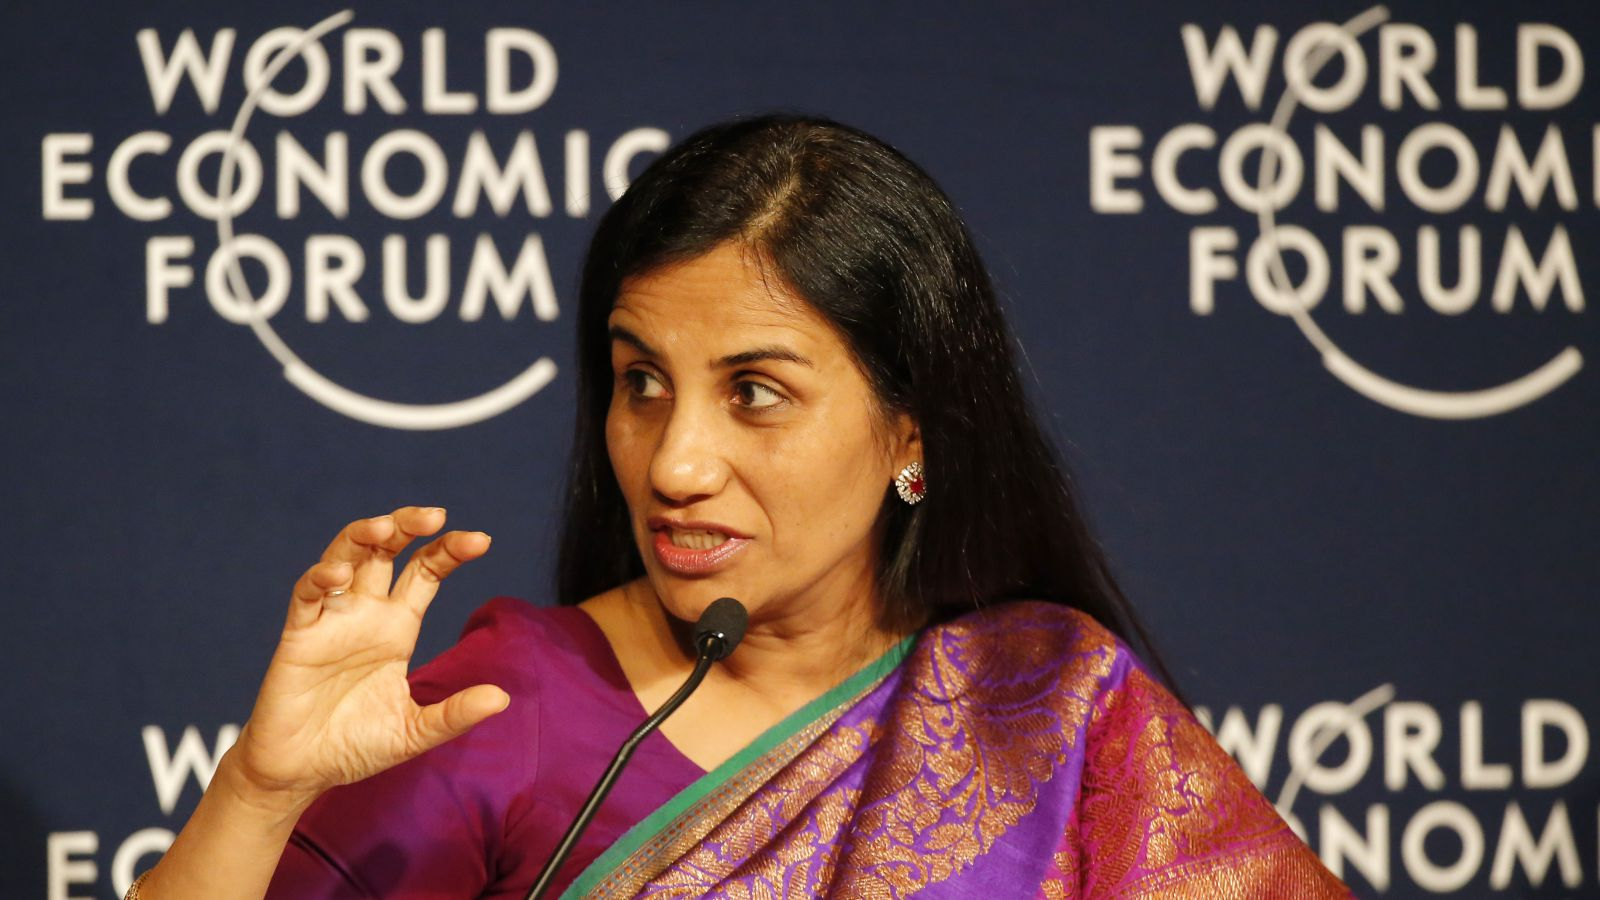 """Chanda Kochhar, Managing Director and Chief Executive Officer of ICICI Bank, speaks during a debate hosted by the Associated Press """"Regions in Transformation: South Asia"""" at the World Economic Forum in Davos, Switzerland, Thursday, Jan. 21, 2016. The debate focused on the future of South Asia and the global trends and national priorities that are affecting its transformation."""